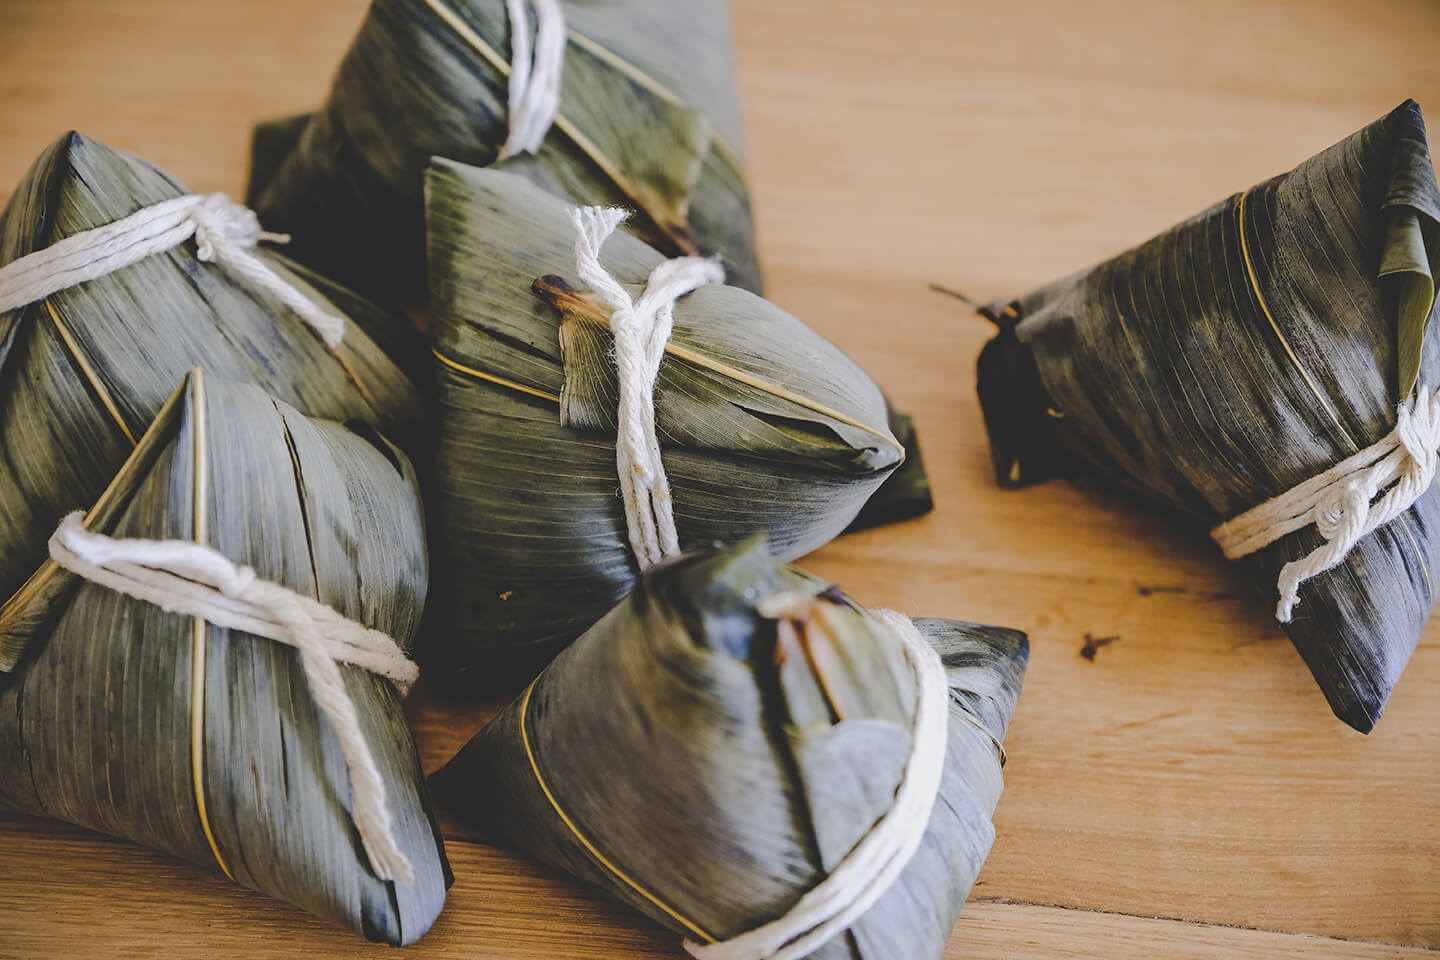 Bundles of food wrapped in bamboo leaves tied shut with twine.